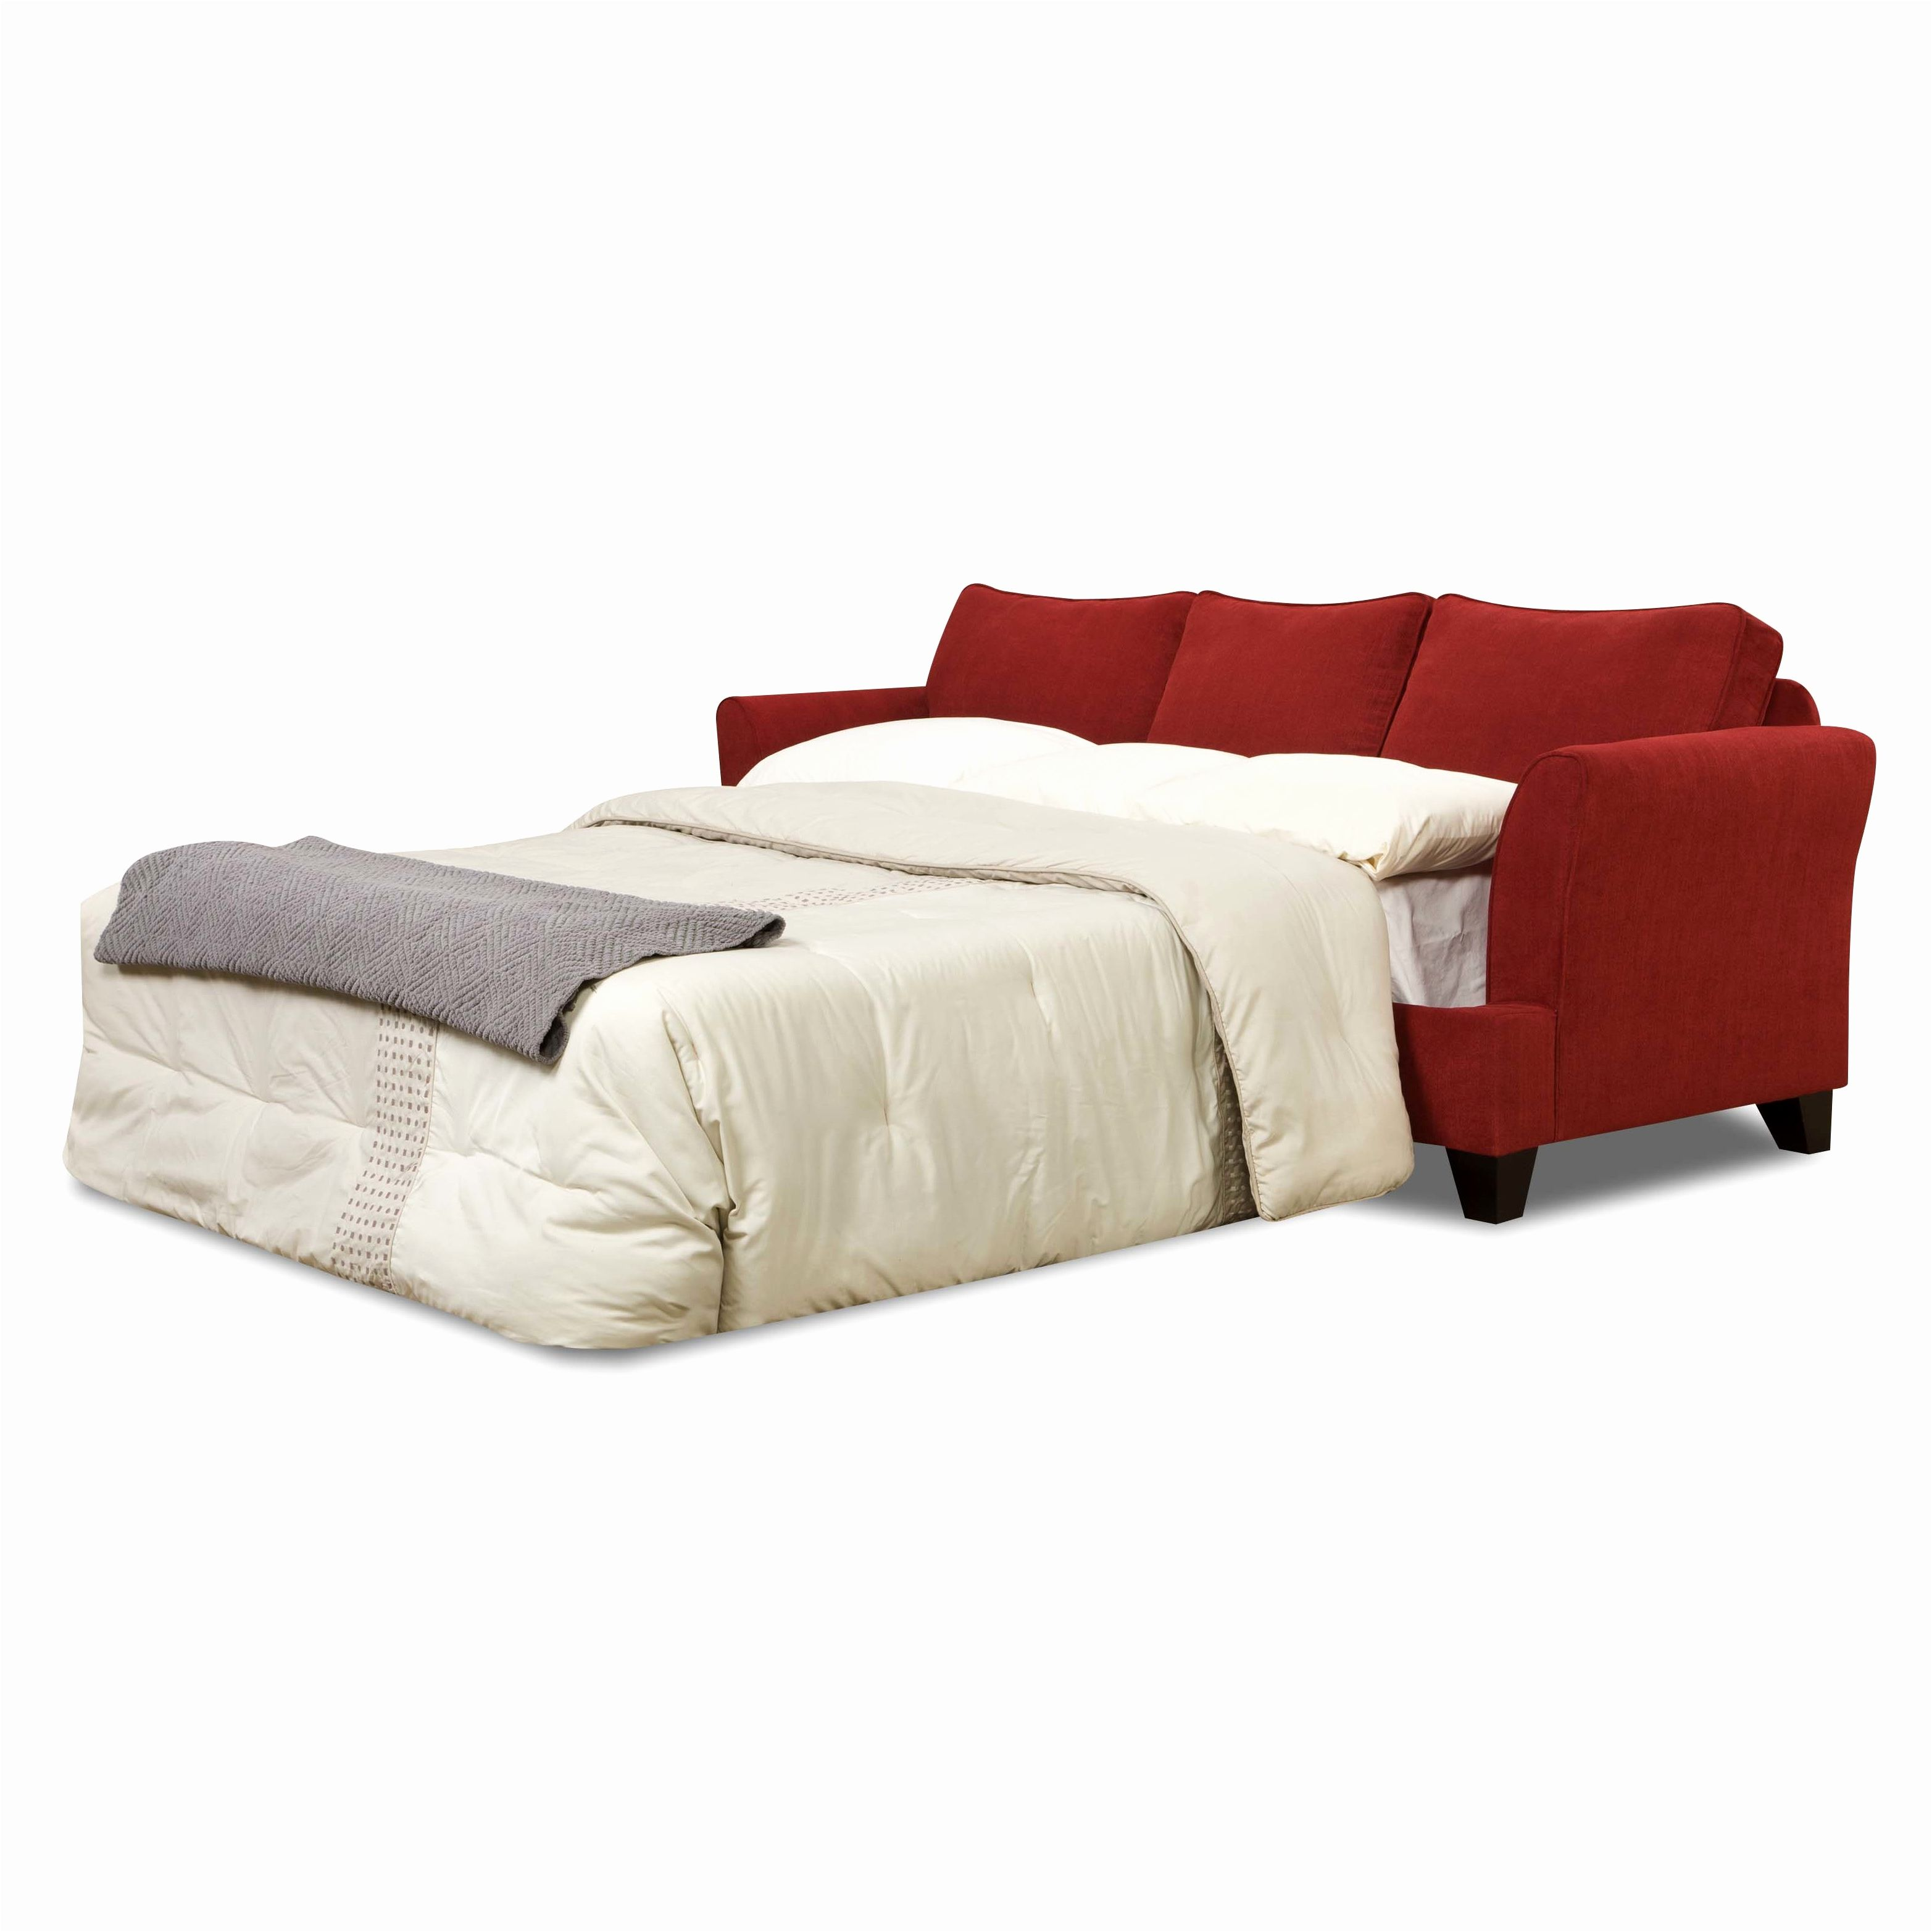 Leder Twin Sofa Bett Pull Out Sofa Futon Sofa Leder Pull Out Couch